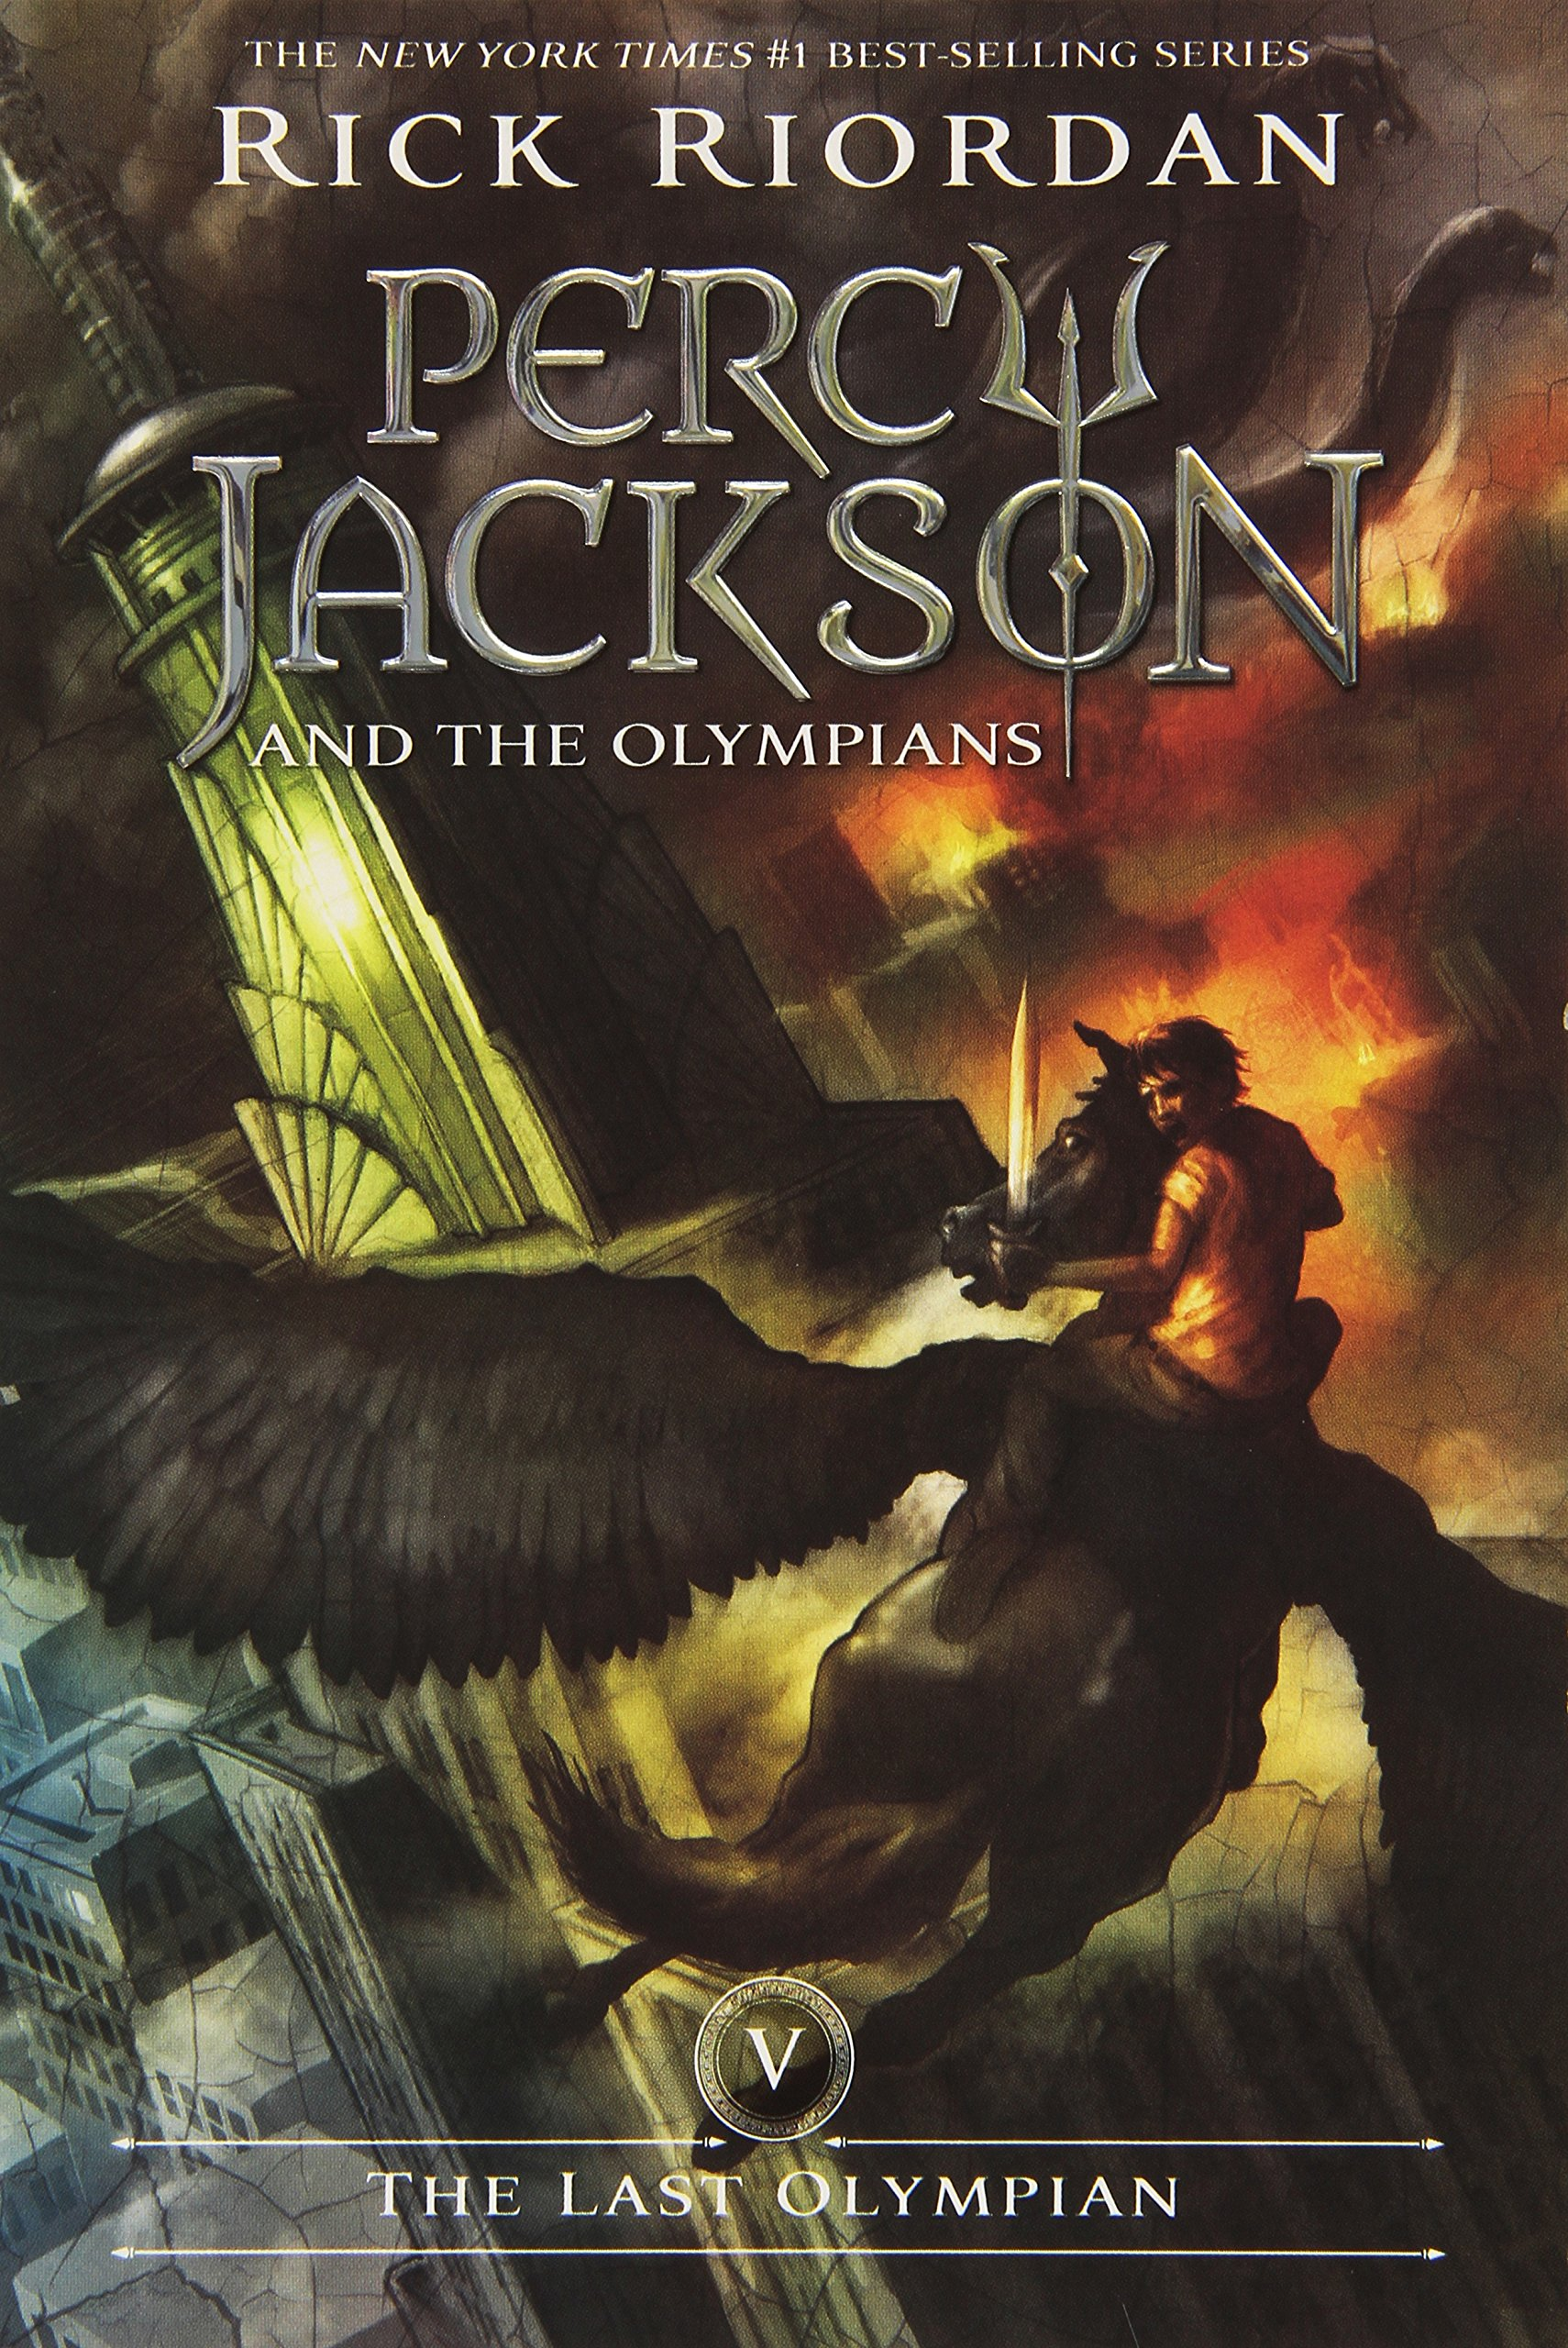 com the last olympian percy jackson and the olympians com the last olympian percy jackson and the olympians book 5 9781423101505 rick riordan books